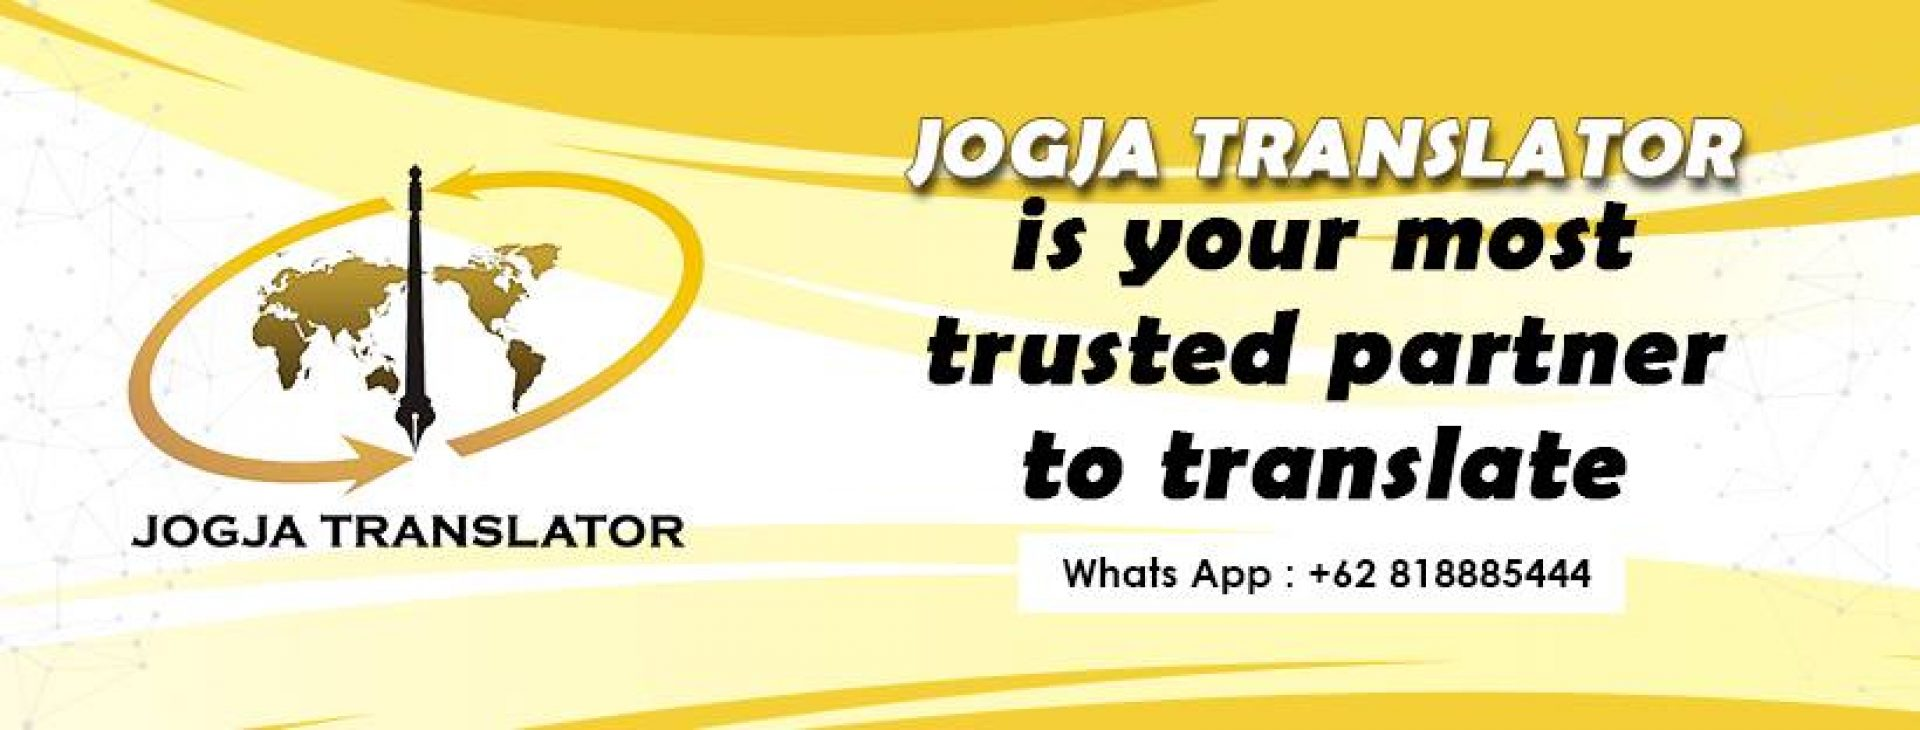 JOGJA TRANSLATOR